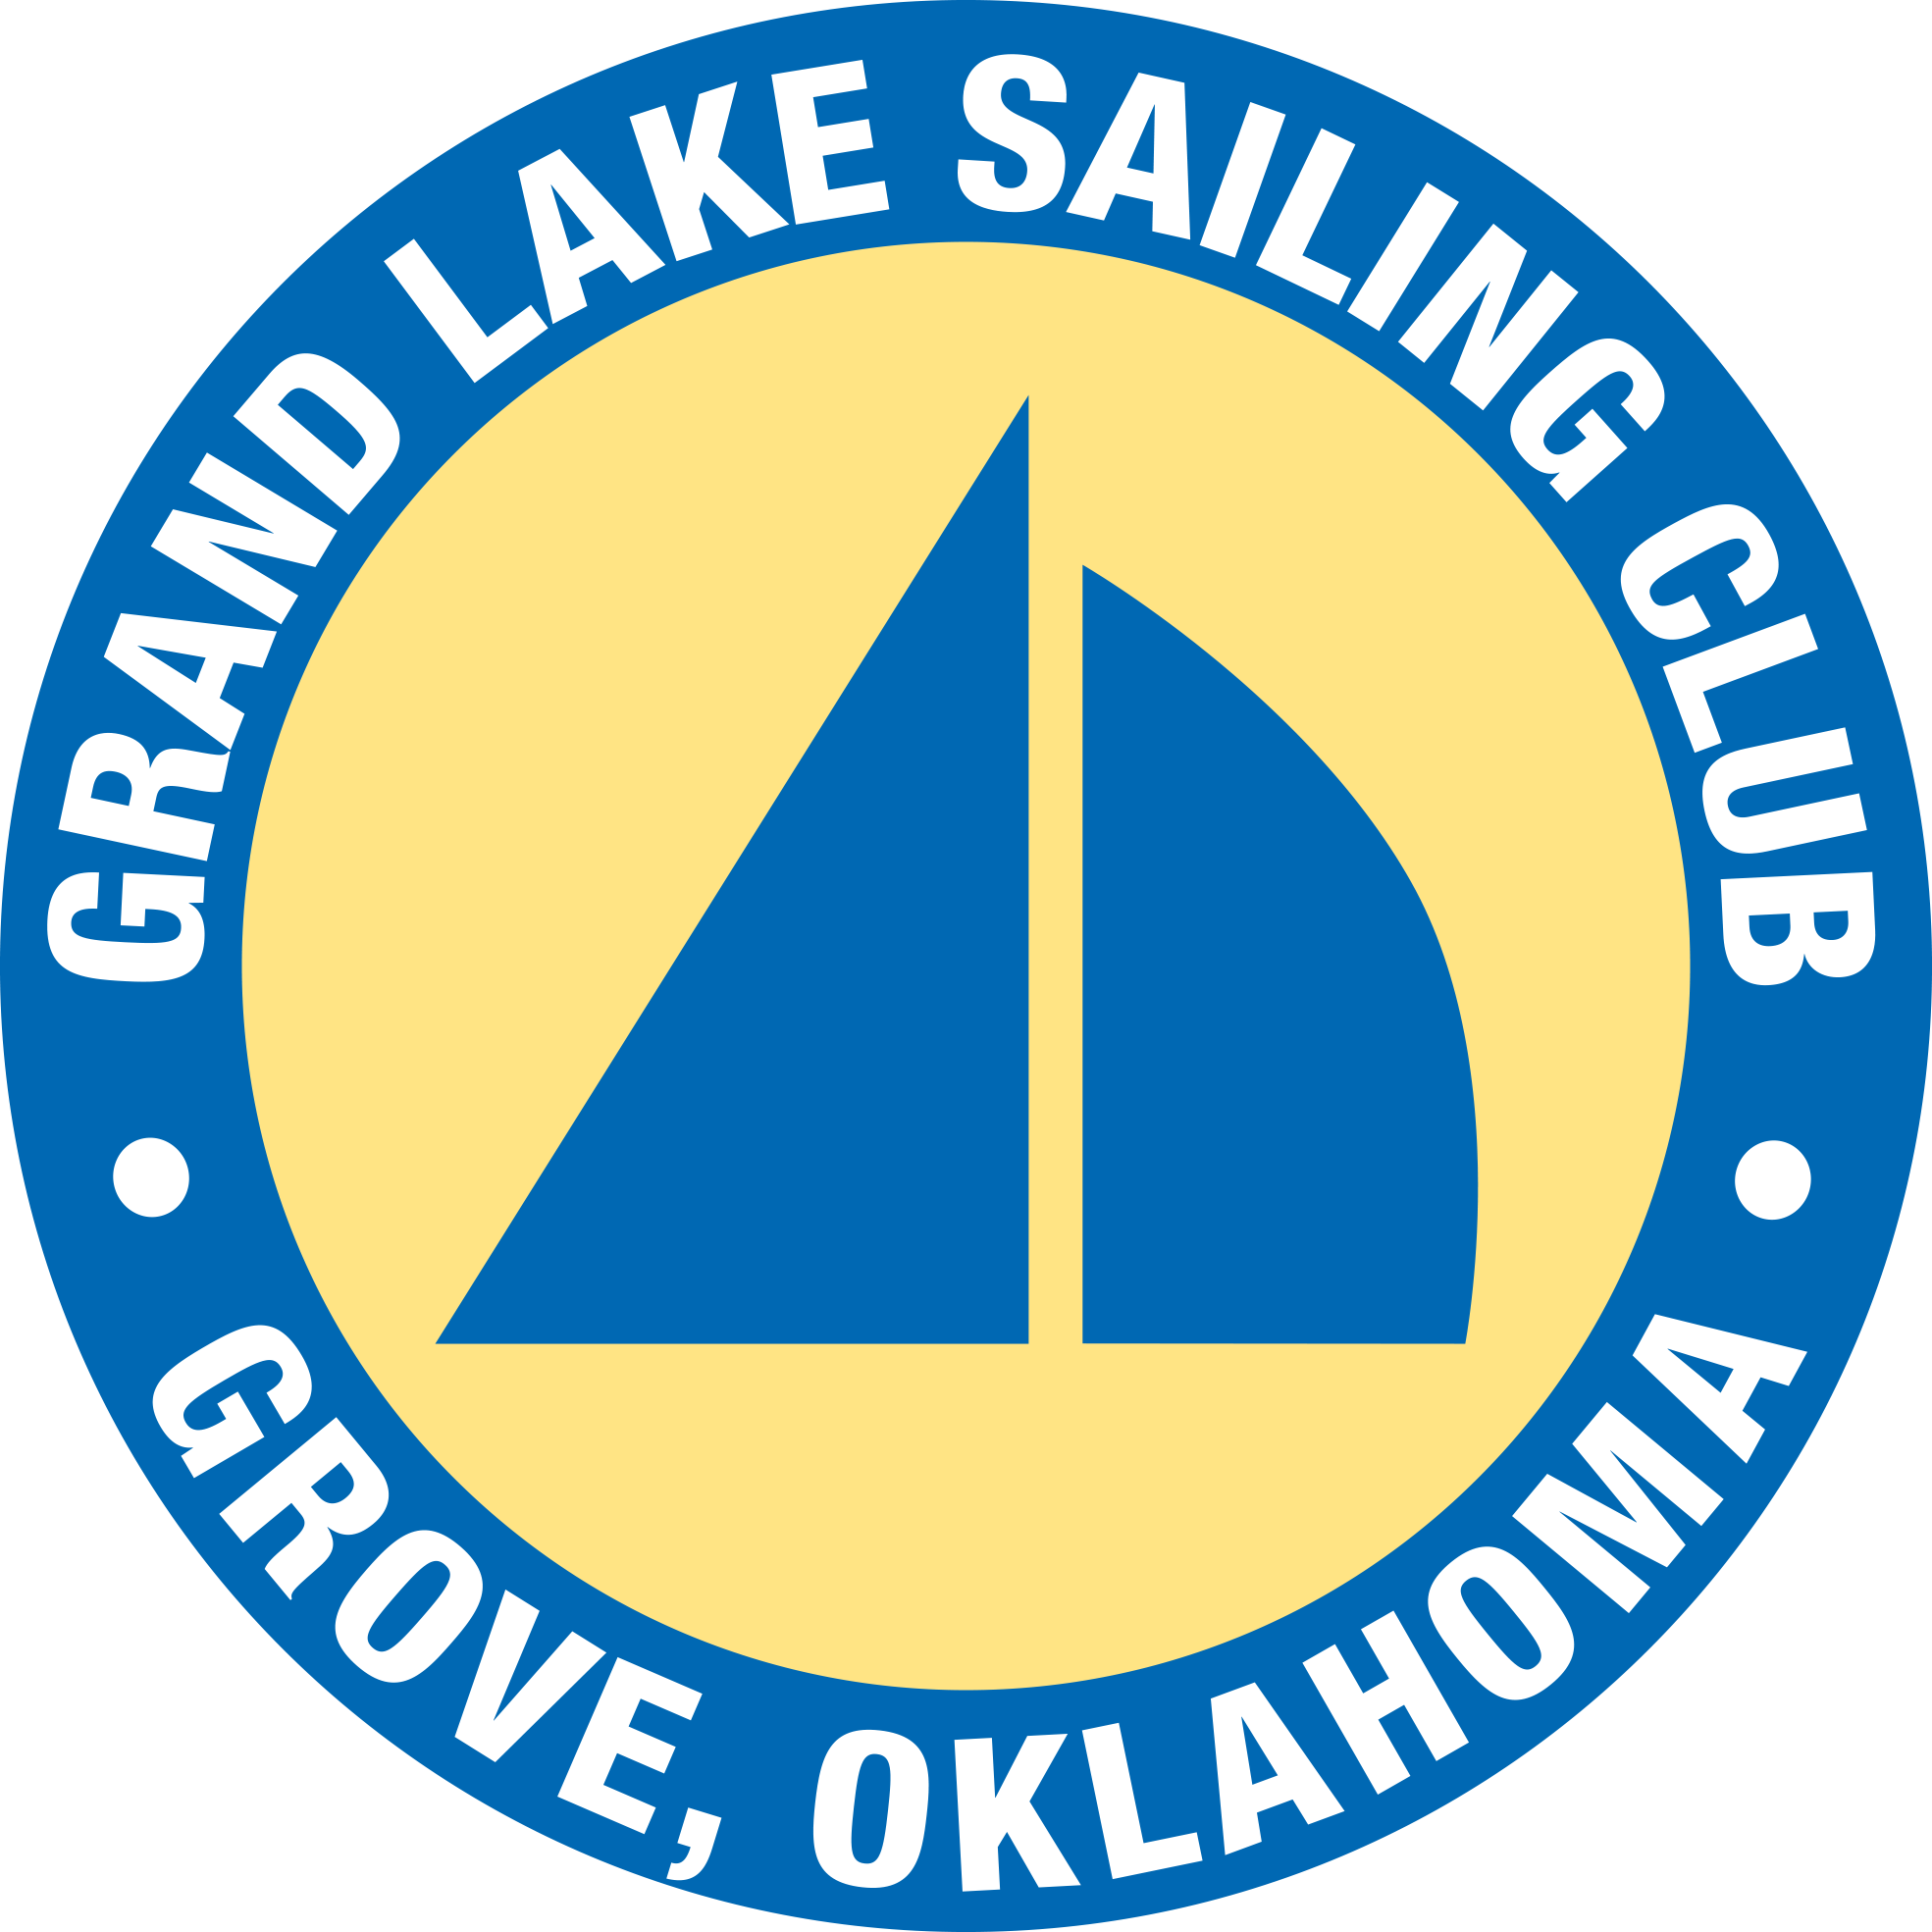 Grand Lake Sailing Club